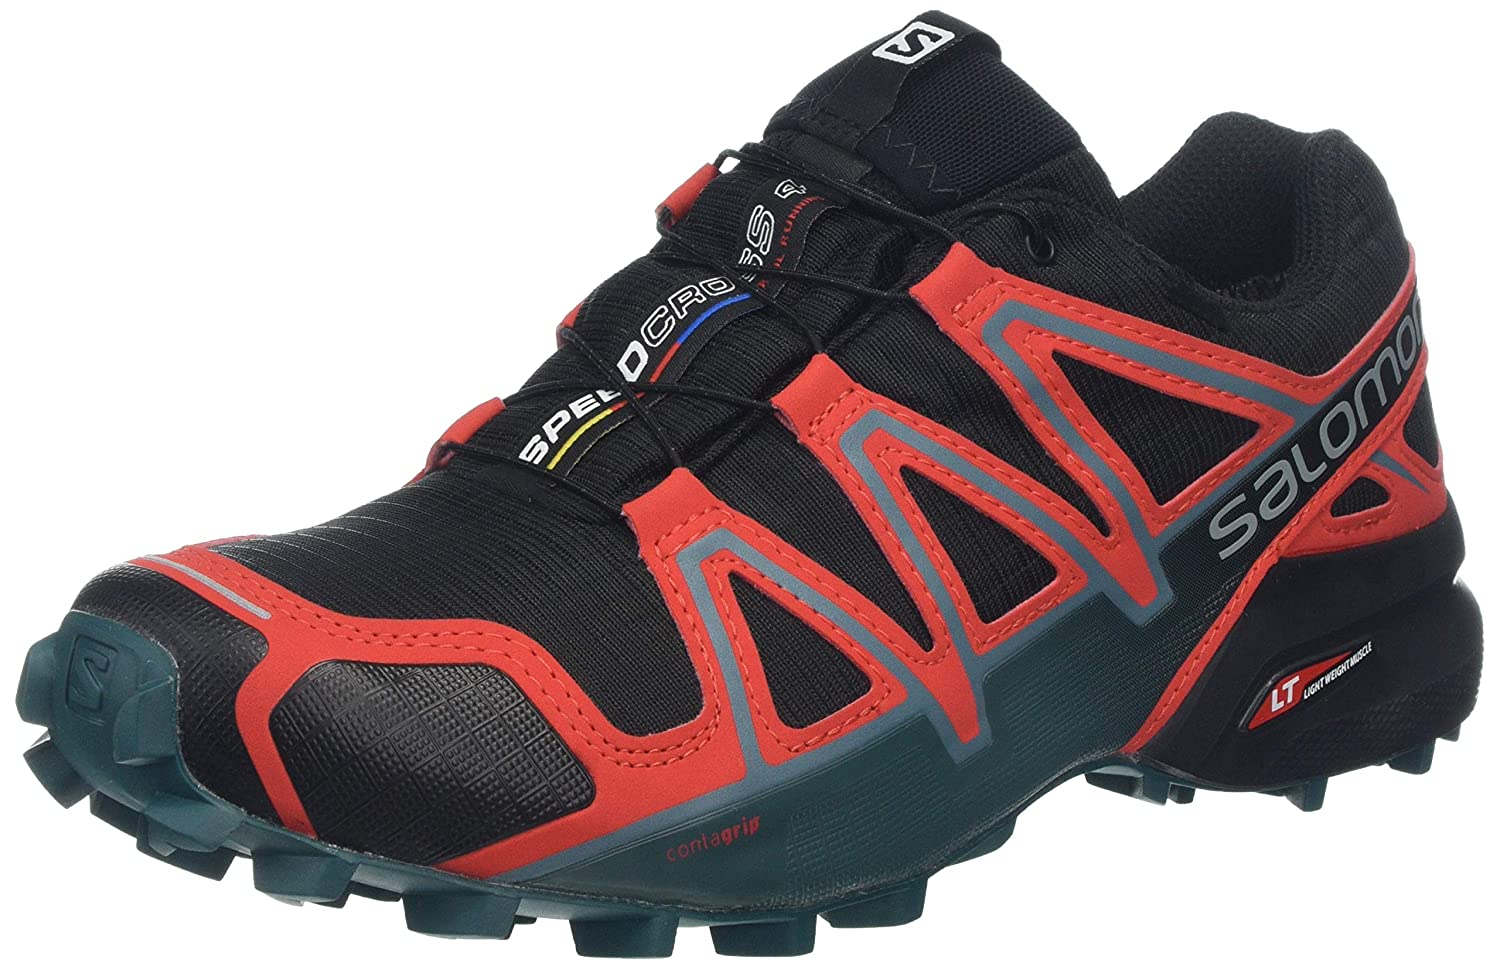 Discover a wide range of choice from Salomon Speedtrack